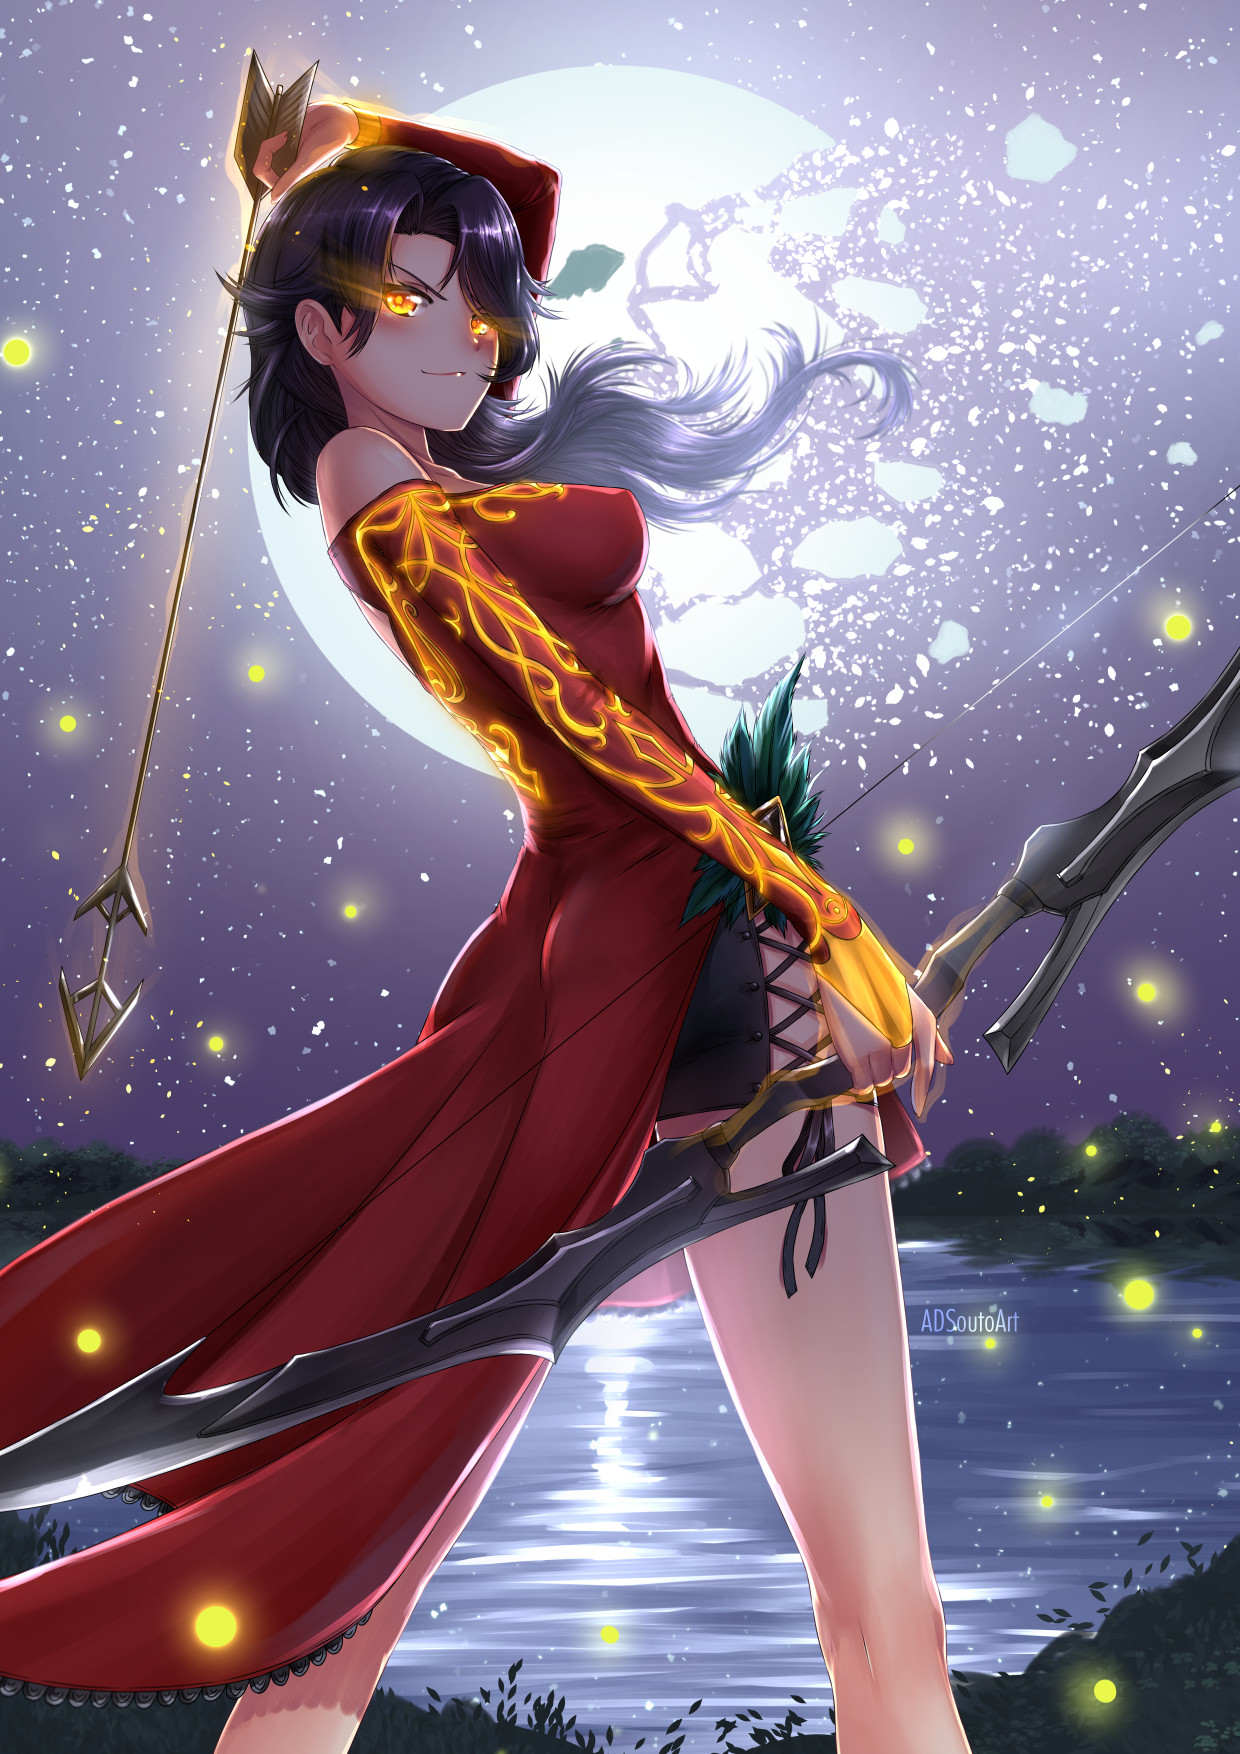 Artstation Summer Time Cinder Fall Alexander Souto After getting hit into a river, cinder finds herself being saved by ruby rose, the leader of team rwby. summer time cinder fall alexander souto